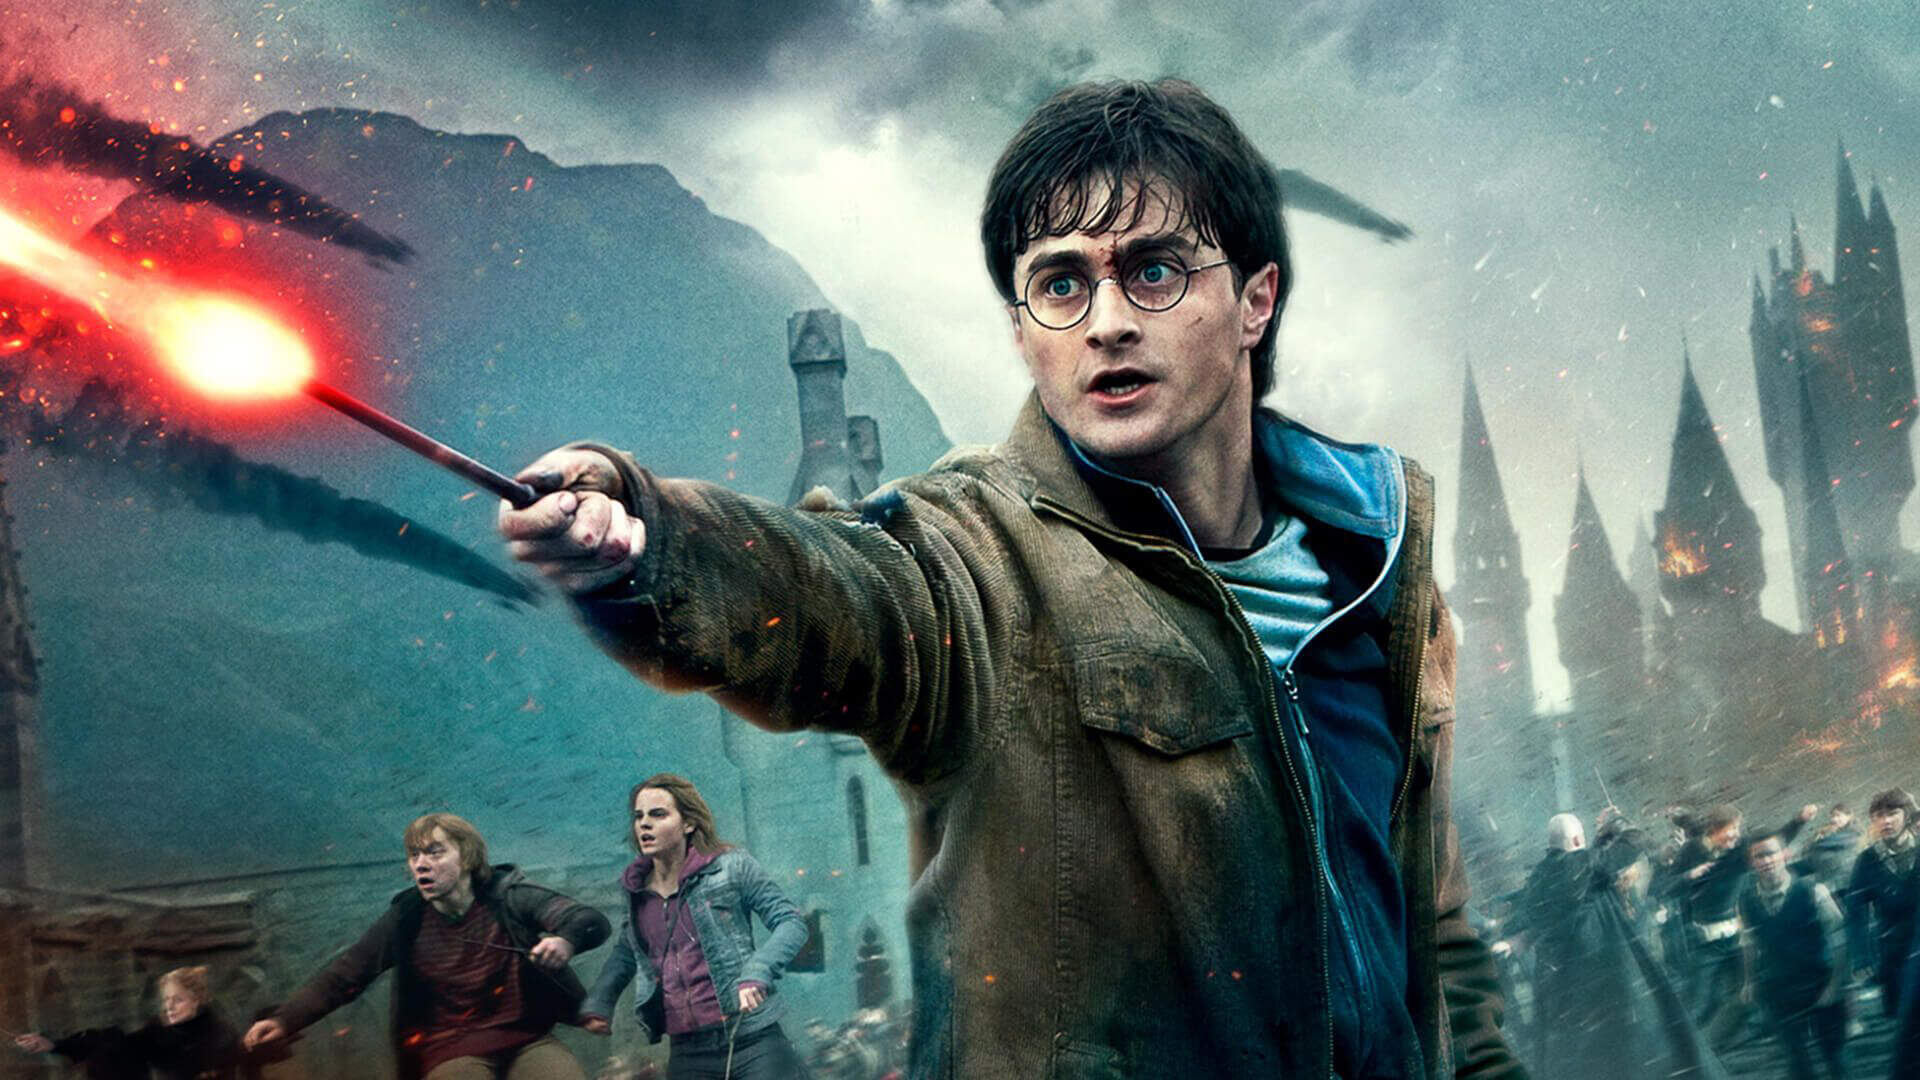 Next-Gen Harry Potter Game Reportedly Set for 2021, With Little Involvement From J.K. Rowling